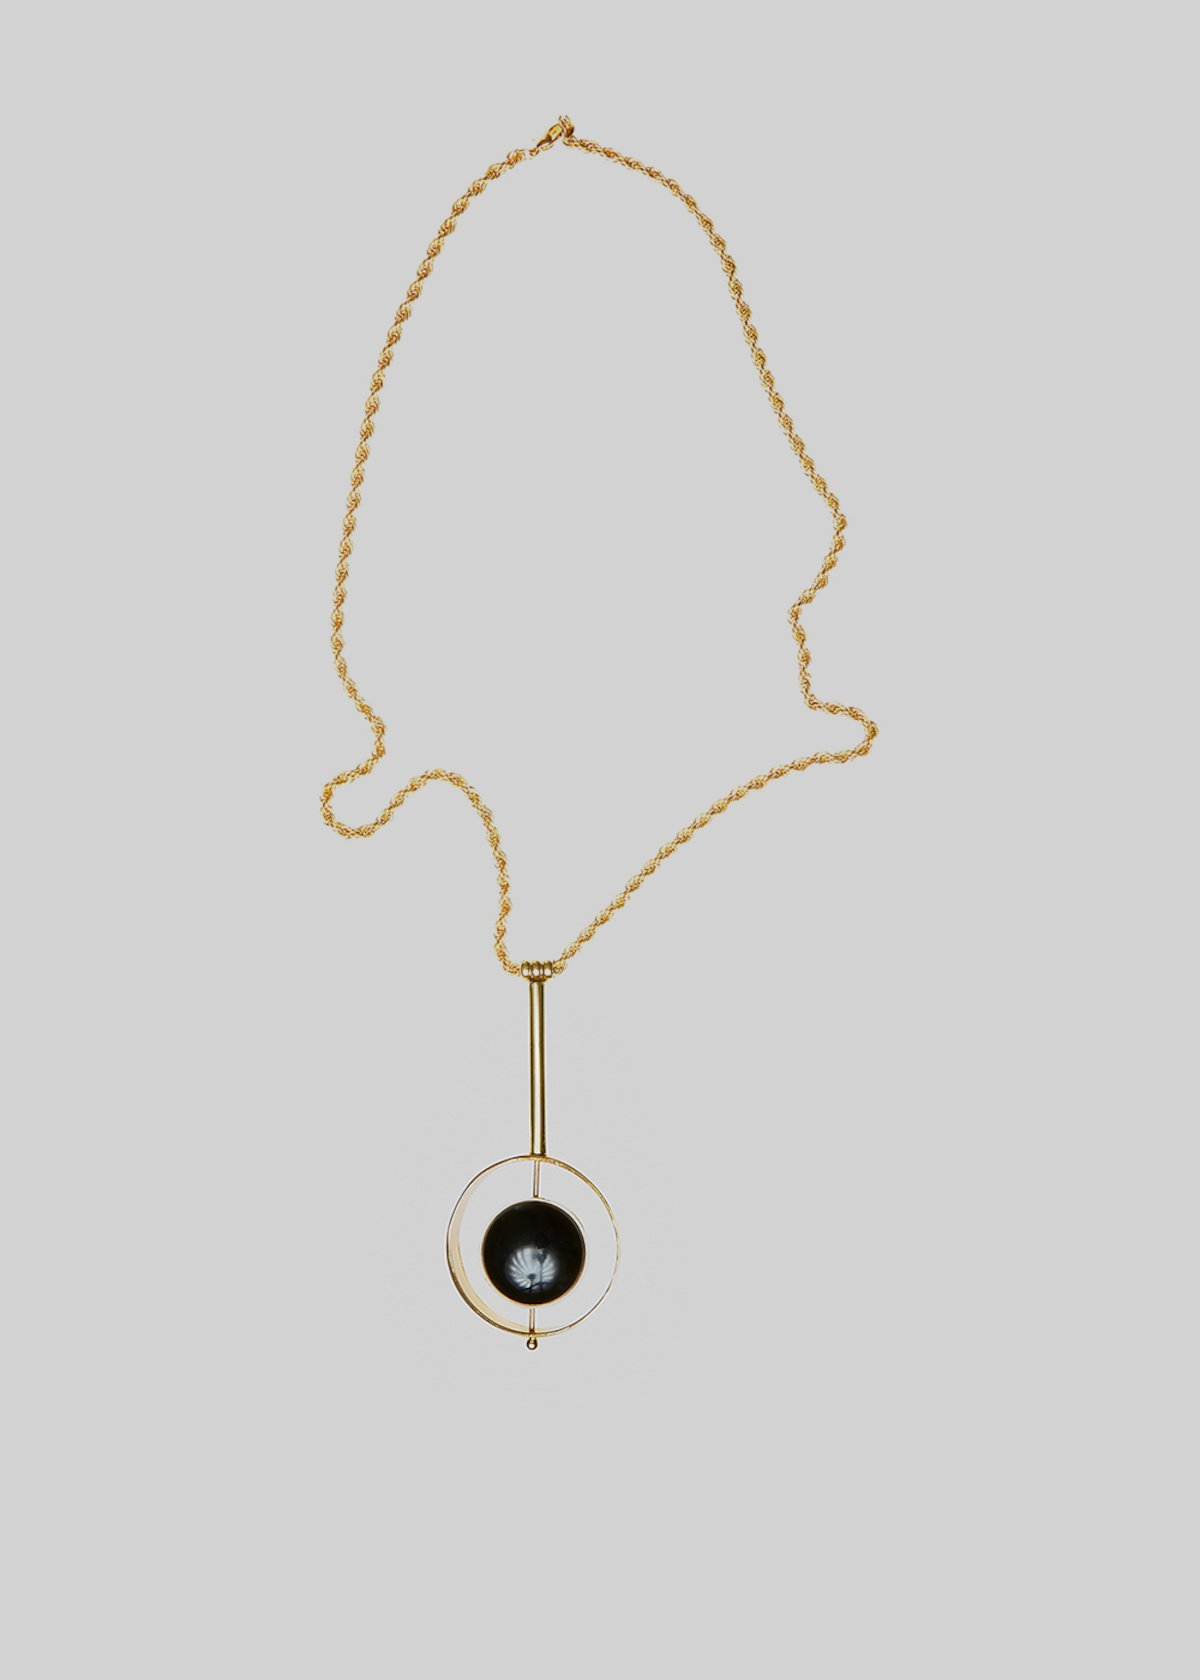 Creamy Metal Necklace with round circle detail